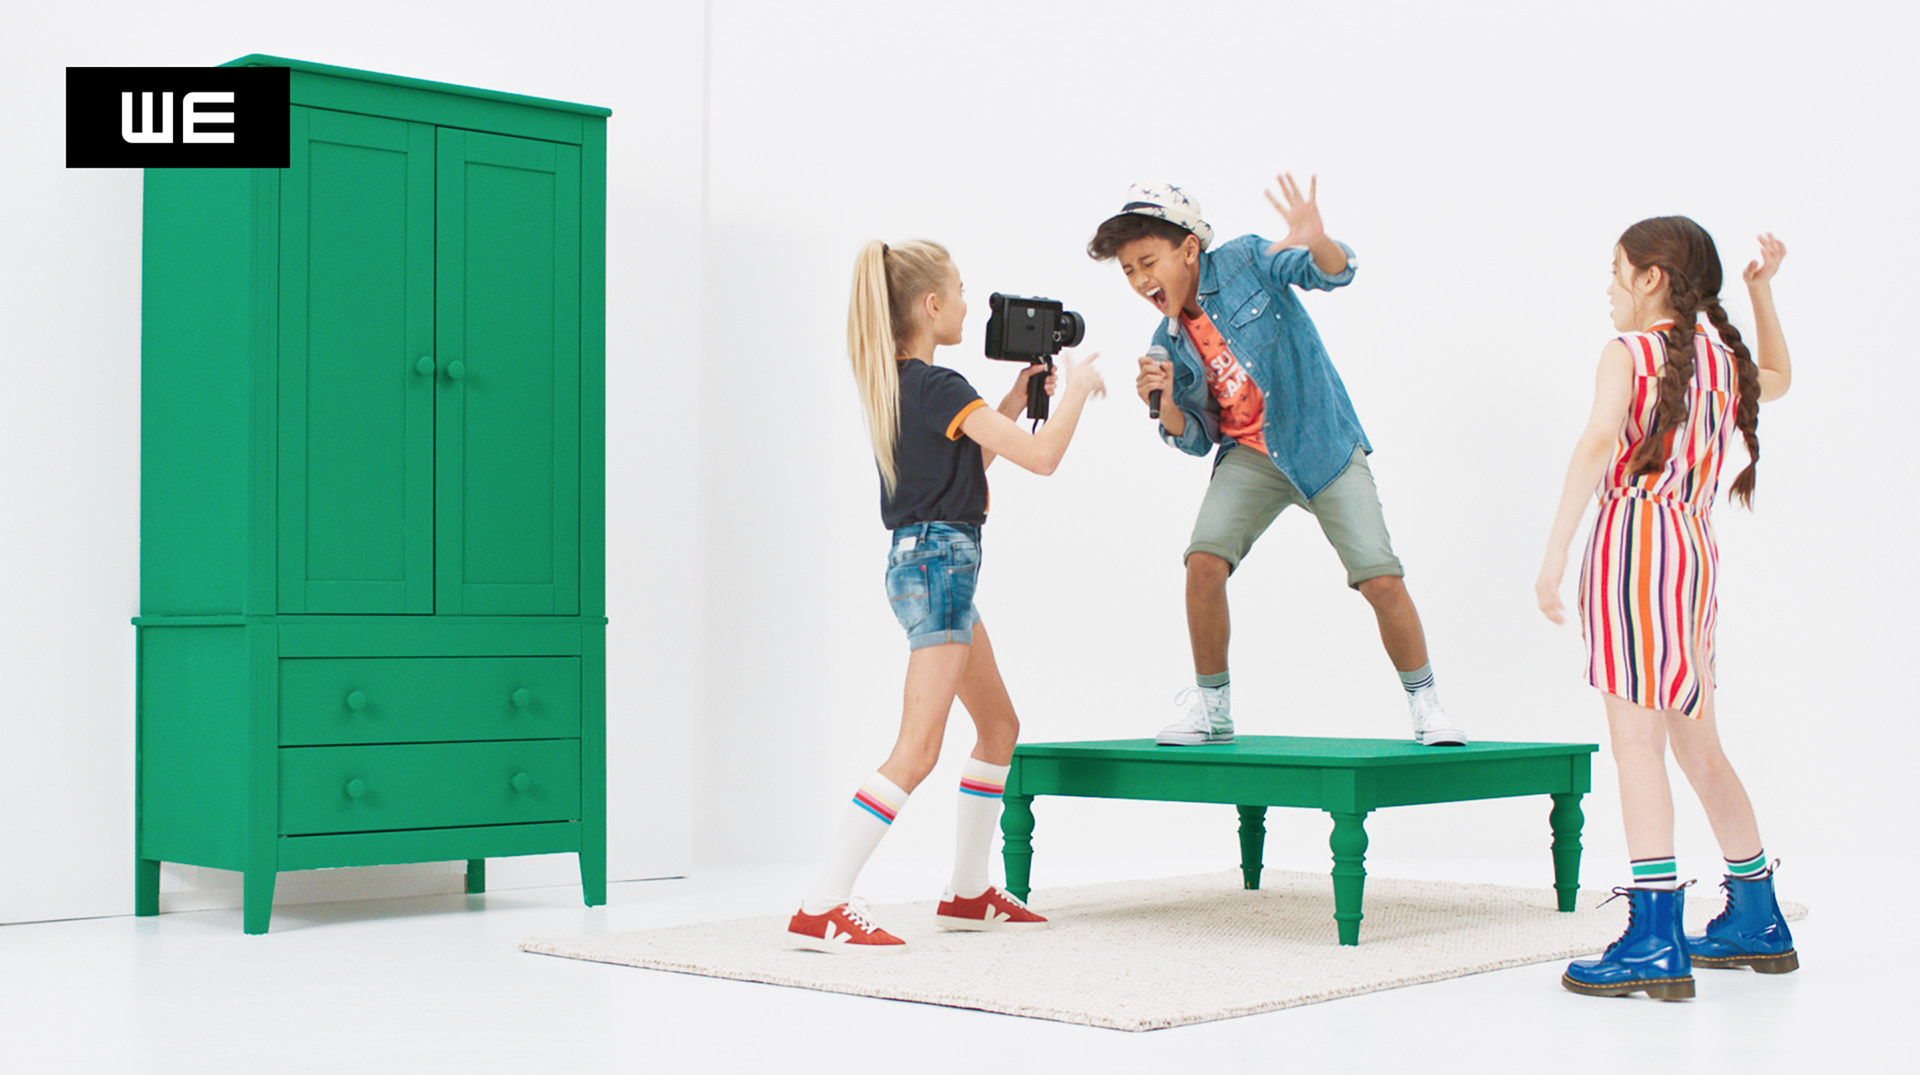 WE KIDS - COMMERCIAL